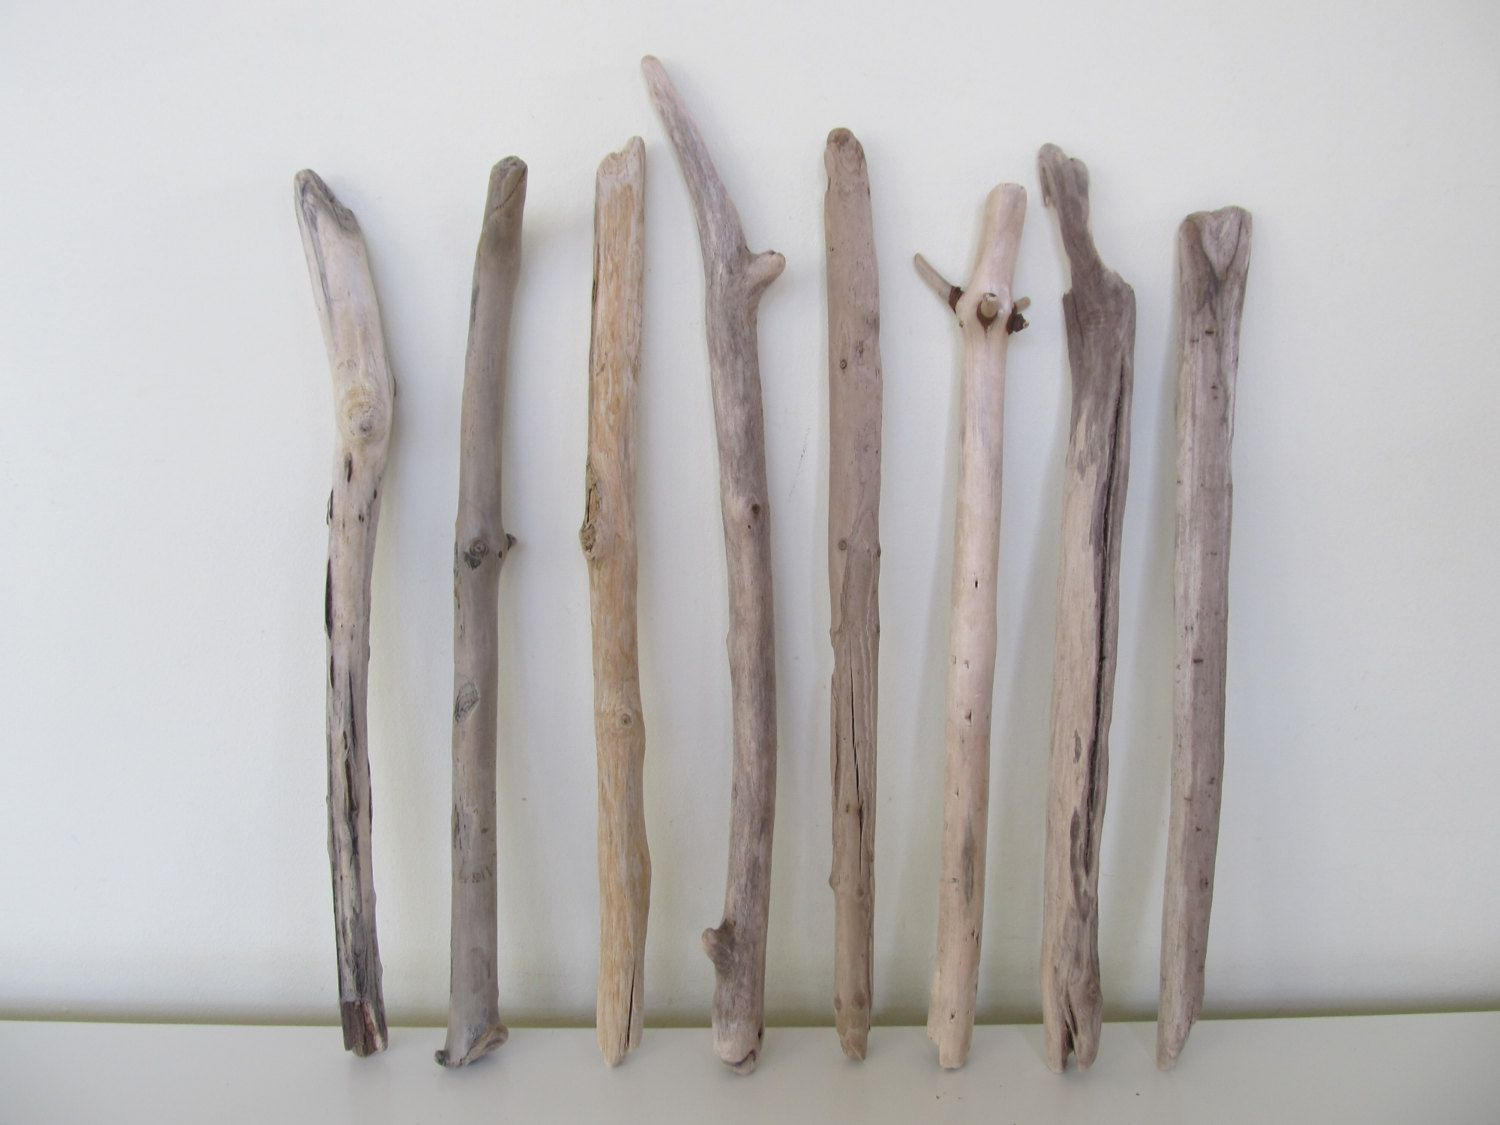 8 Straight & Slender Driftwood Sticks For Crafting Woven Wall Hanging Drift Wood Branches Wind Chime Driftwood Boho Decor by LonelyBeach on Etsy